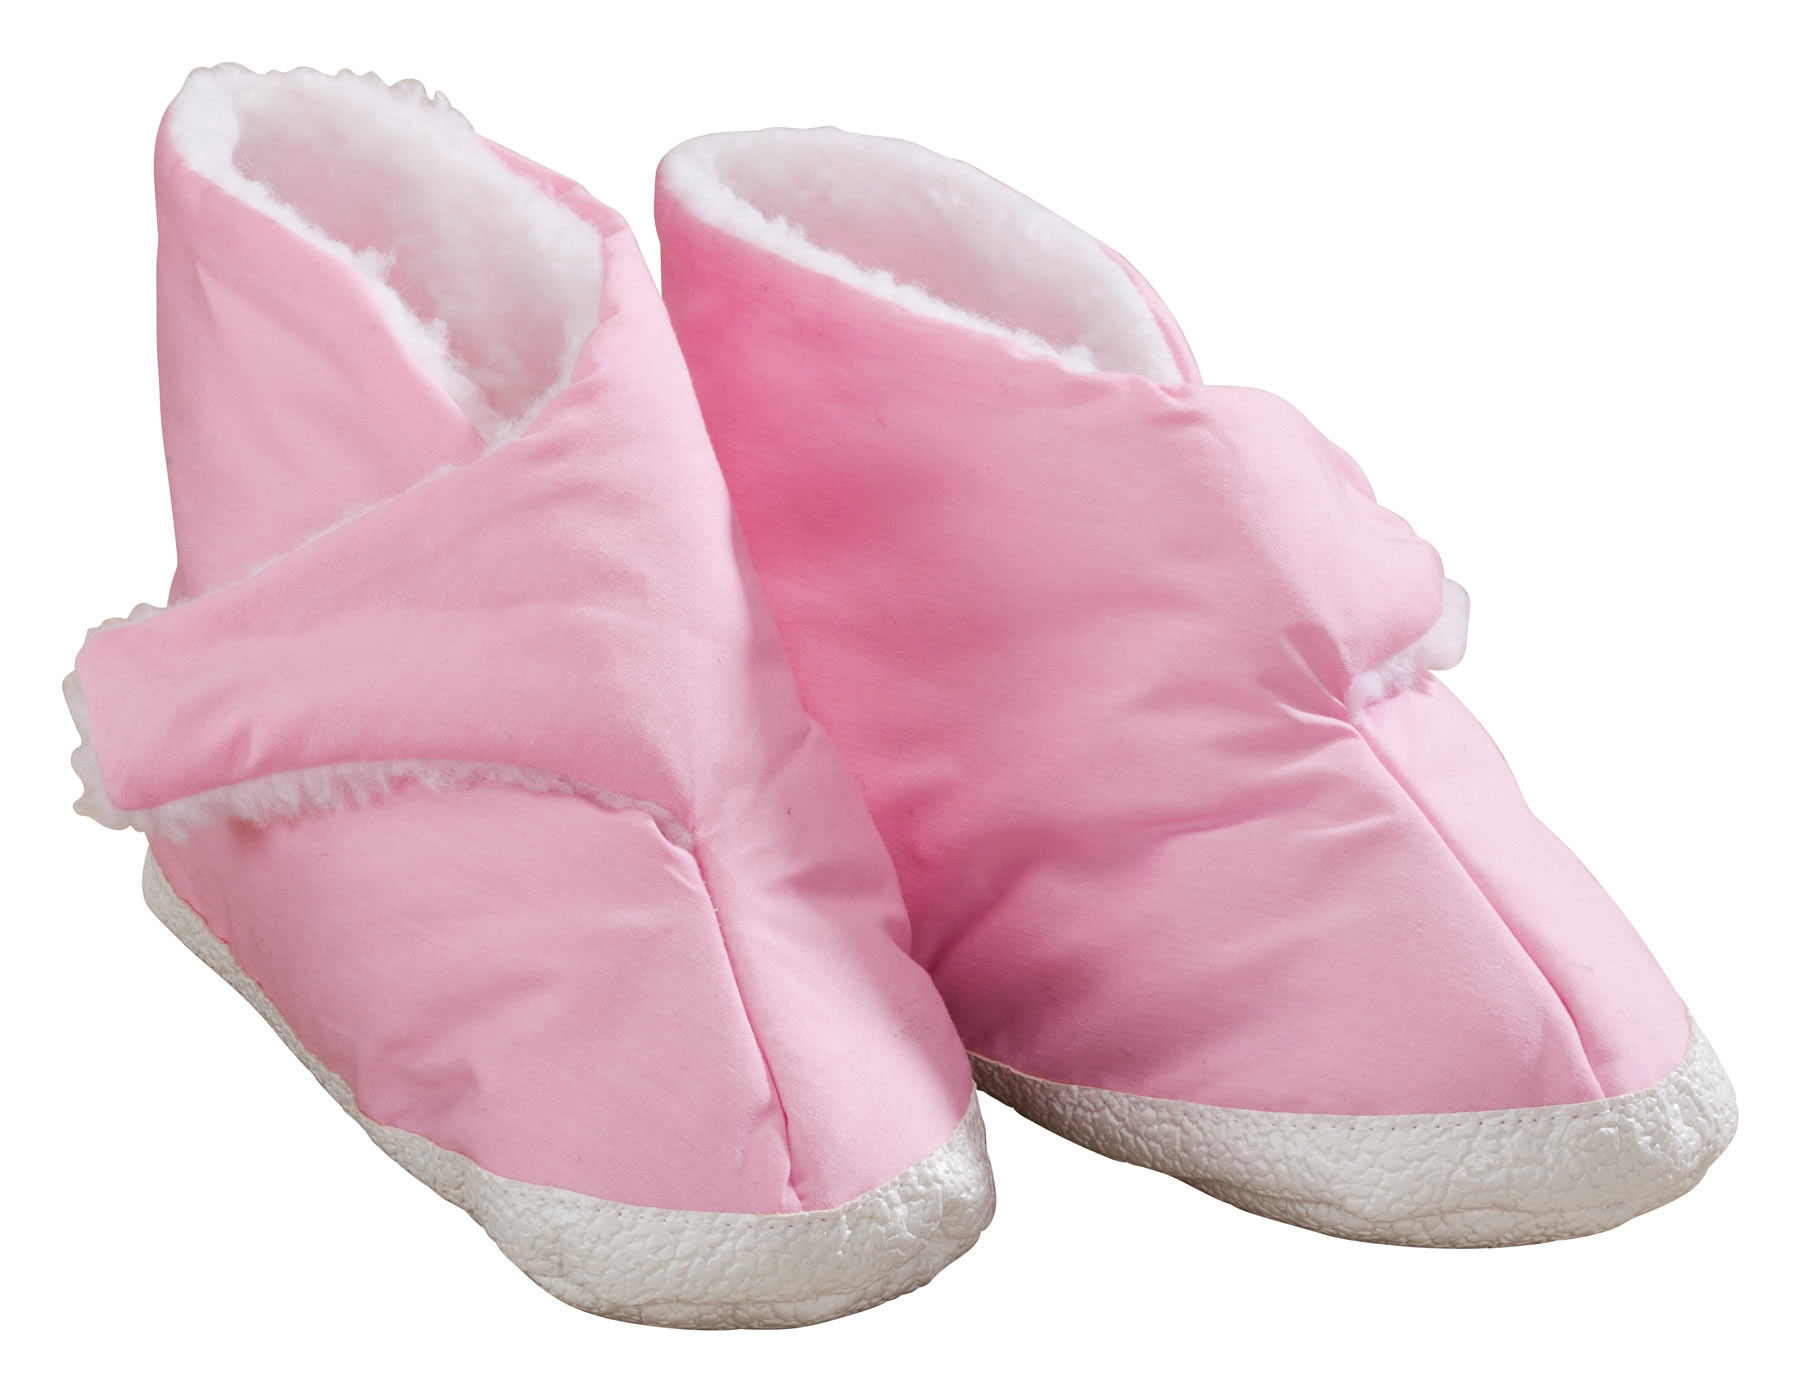 Easycomforts Womens Edema Slippers